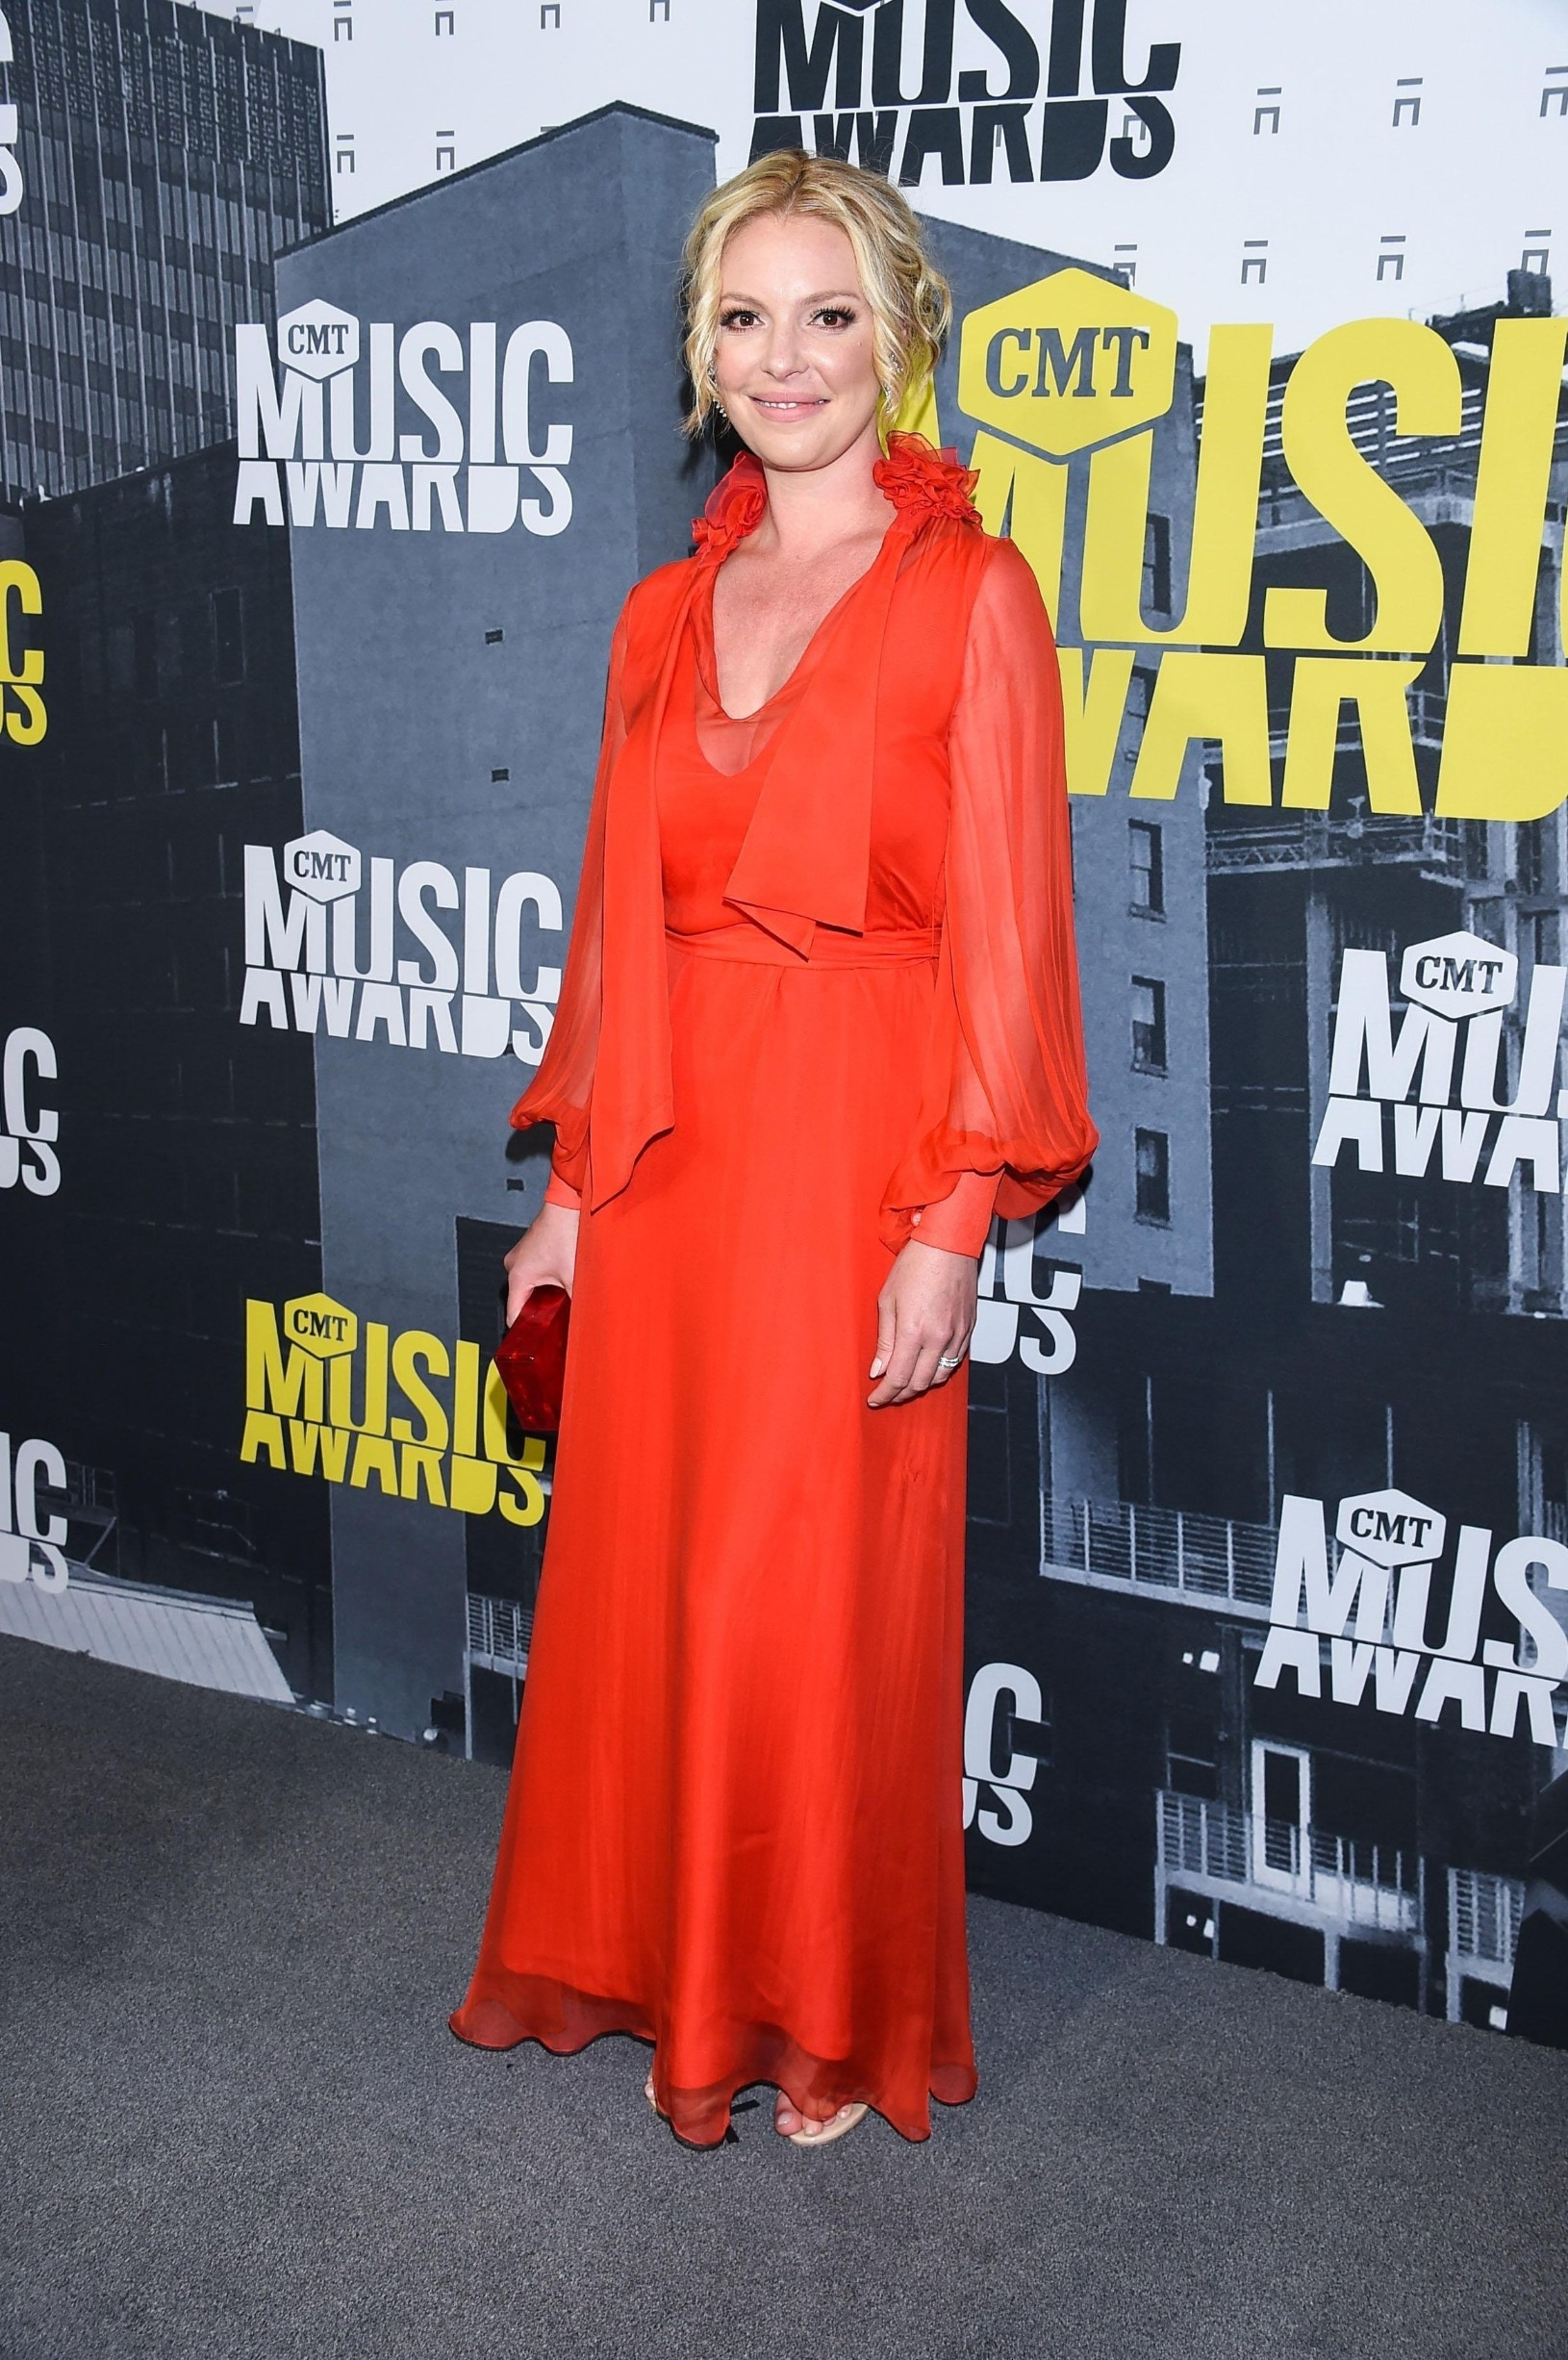 Nashville, TN  - Stars attend the 2017 CMT Music awards at the Music City Center in Tennessee.  BACKGRID USA 7 JUNE 2017,Image: 335782453, License: Rights-managed, Restrictions: , Model Release: no, Credit line: BACKGRID / Backgrid USA / Profimedia